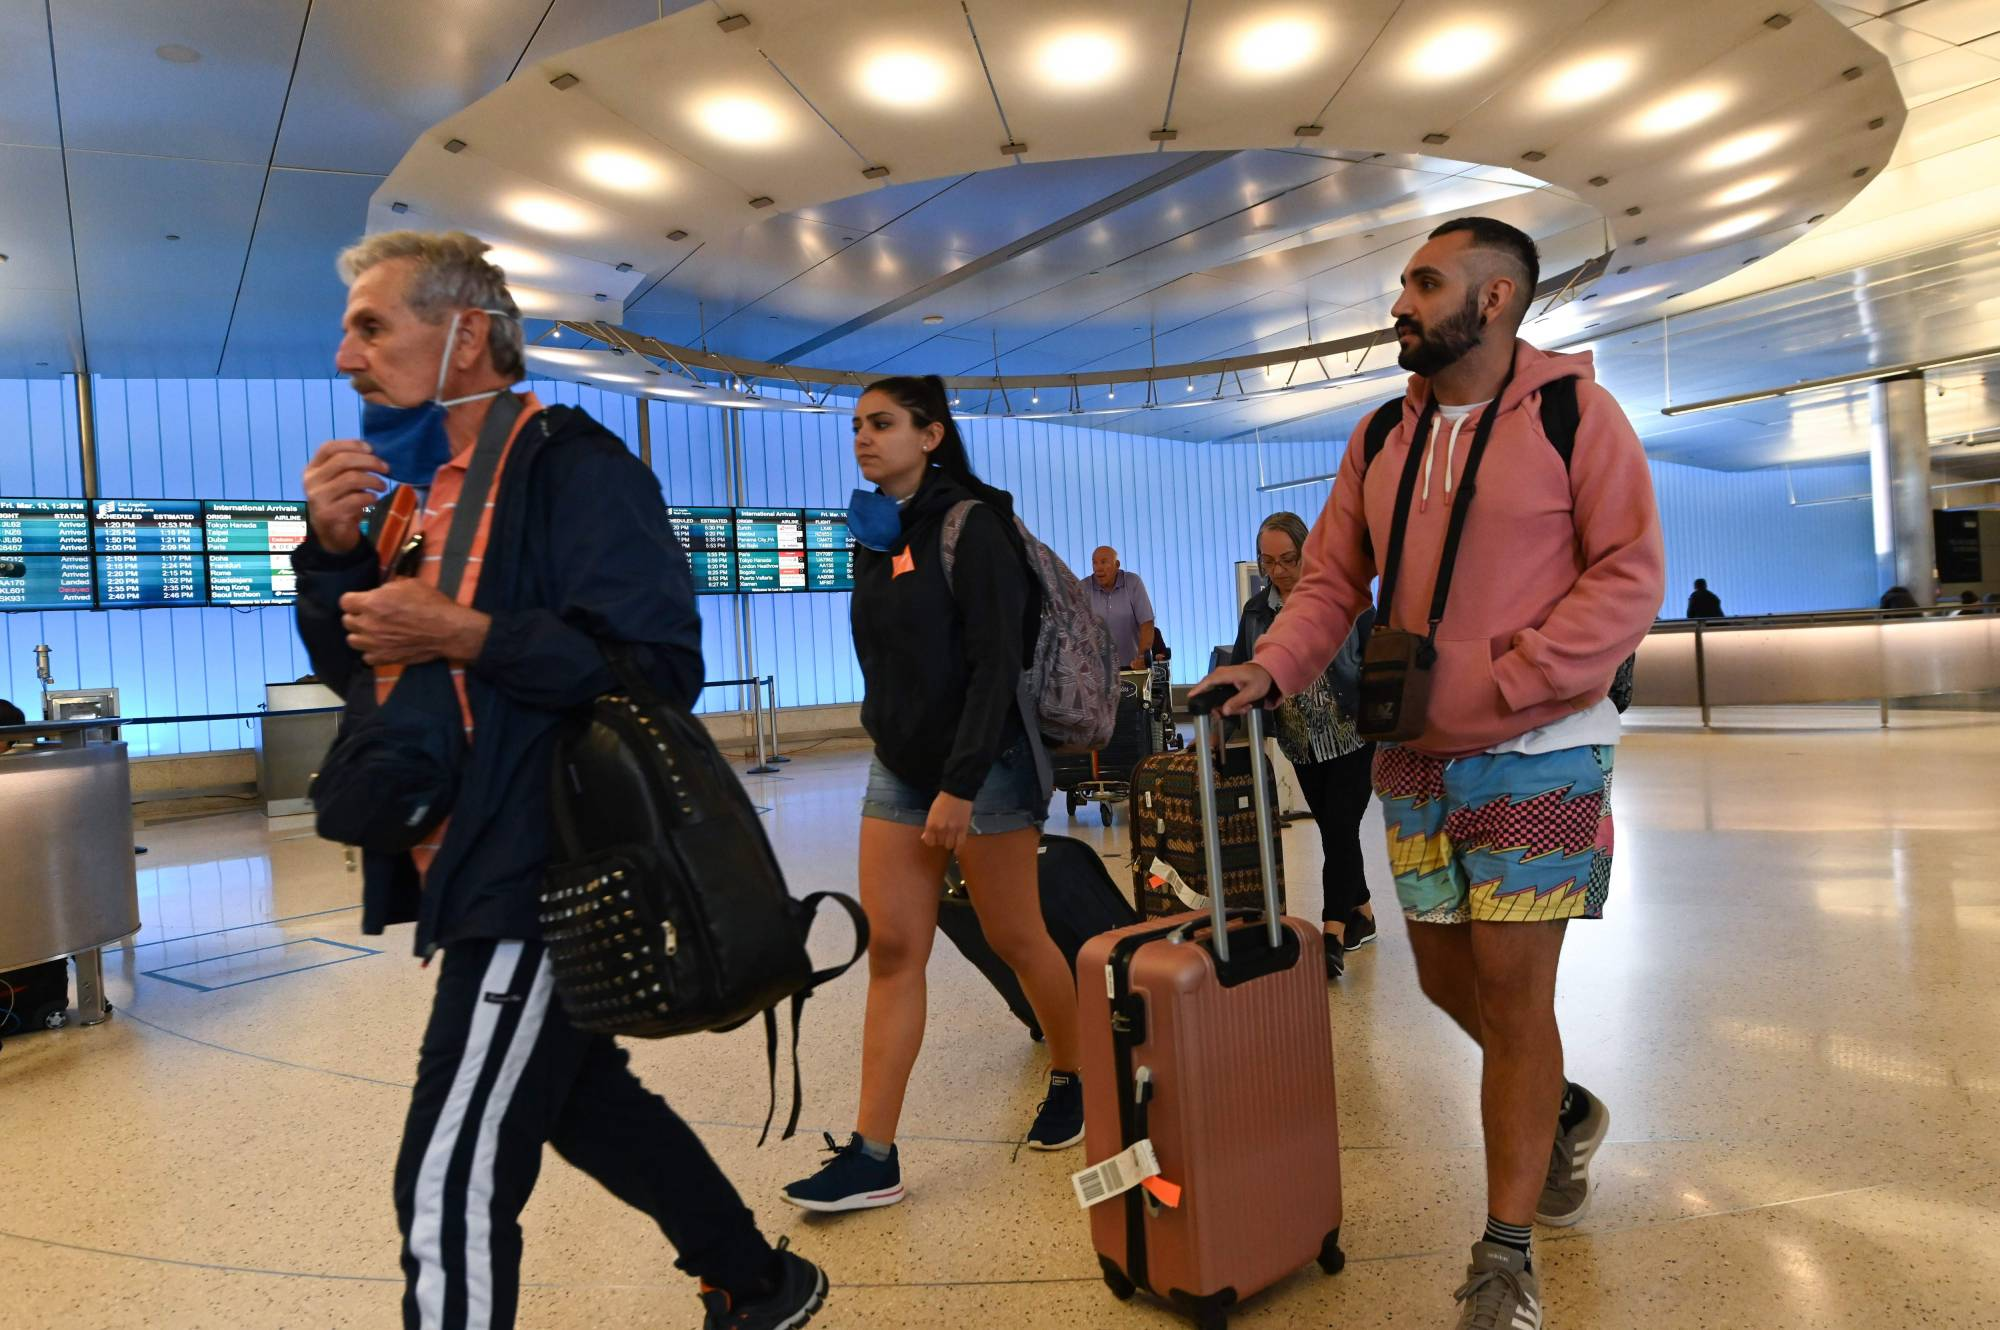 Passengers arrive at Los Angeles Airport's international terminal hours before the start of the European travel ban on March 13.  | AFP-JIJI